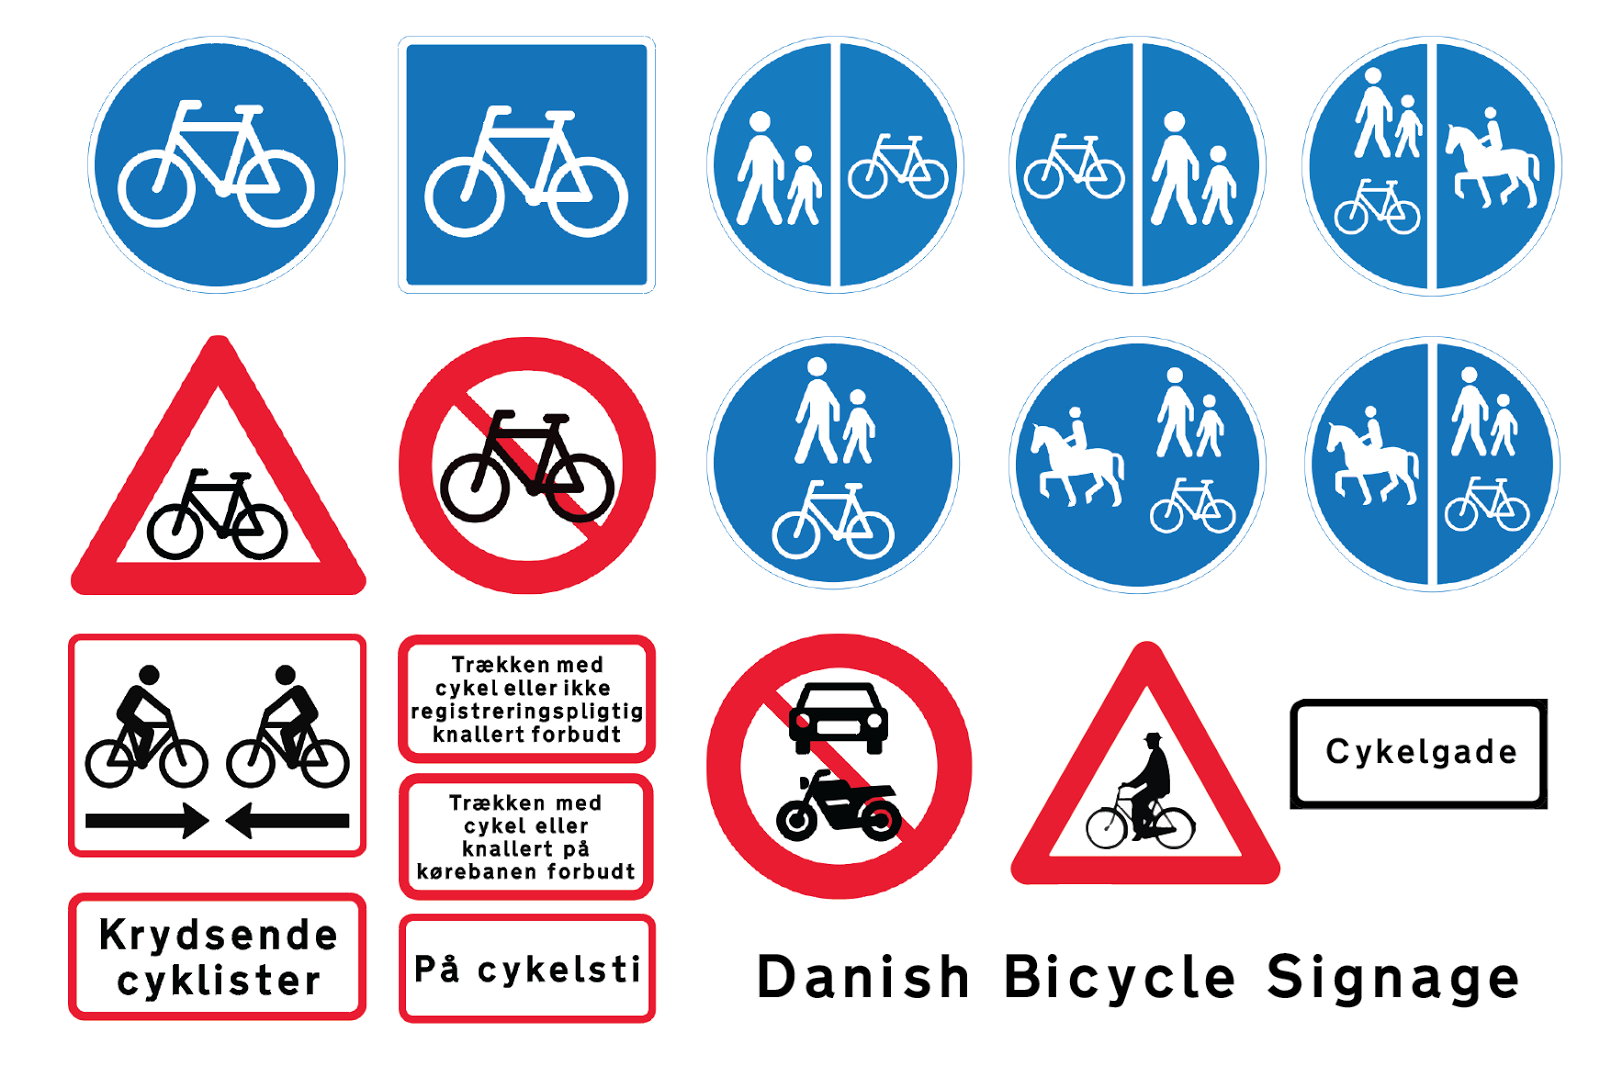 com bicycle culture by design designing bicycle above are all the traffic signs in relating to cycling at bottom left is the signage for bi directional cycle tracks which you don t see often for